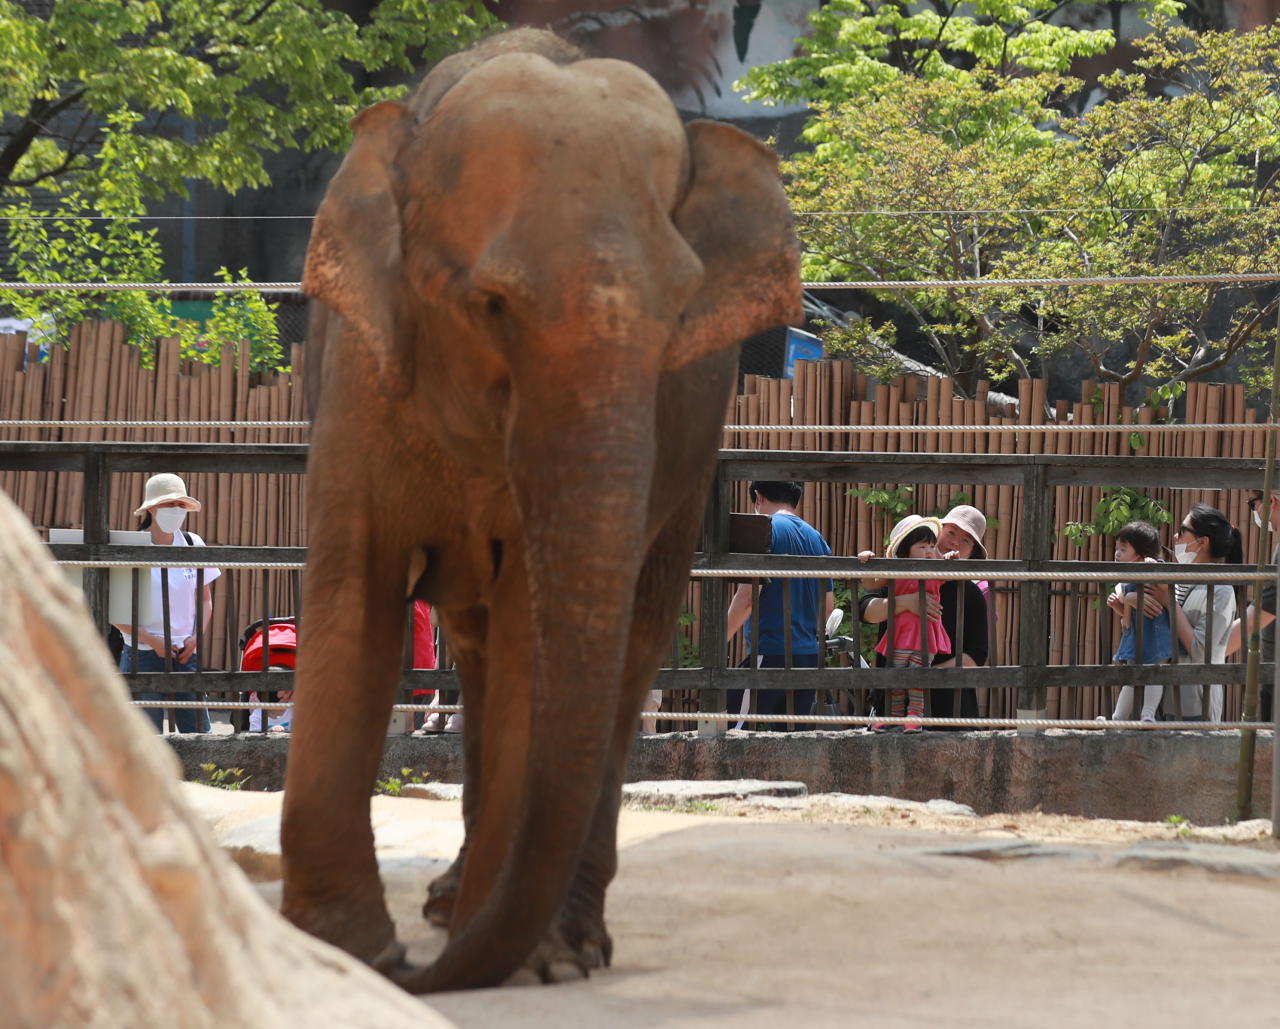 Families with children view an elephant in Children's Grand Park in Seoul on Monday. (Yonhap)